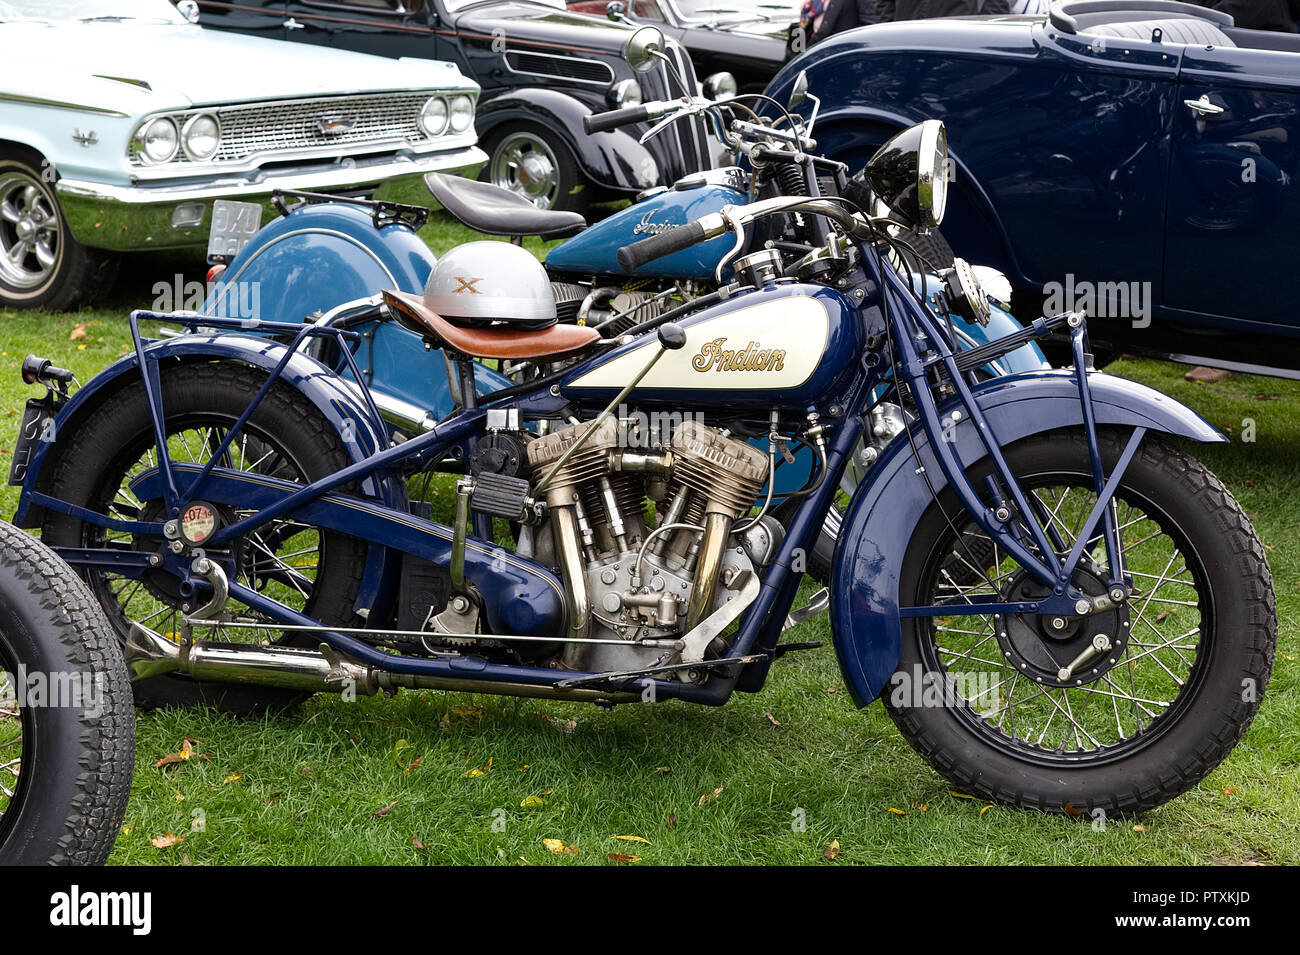 Vintage Indian Motorcycle High Resolution Stock Photography And Images Alamy